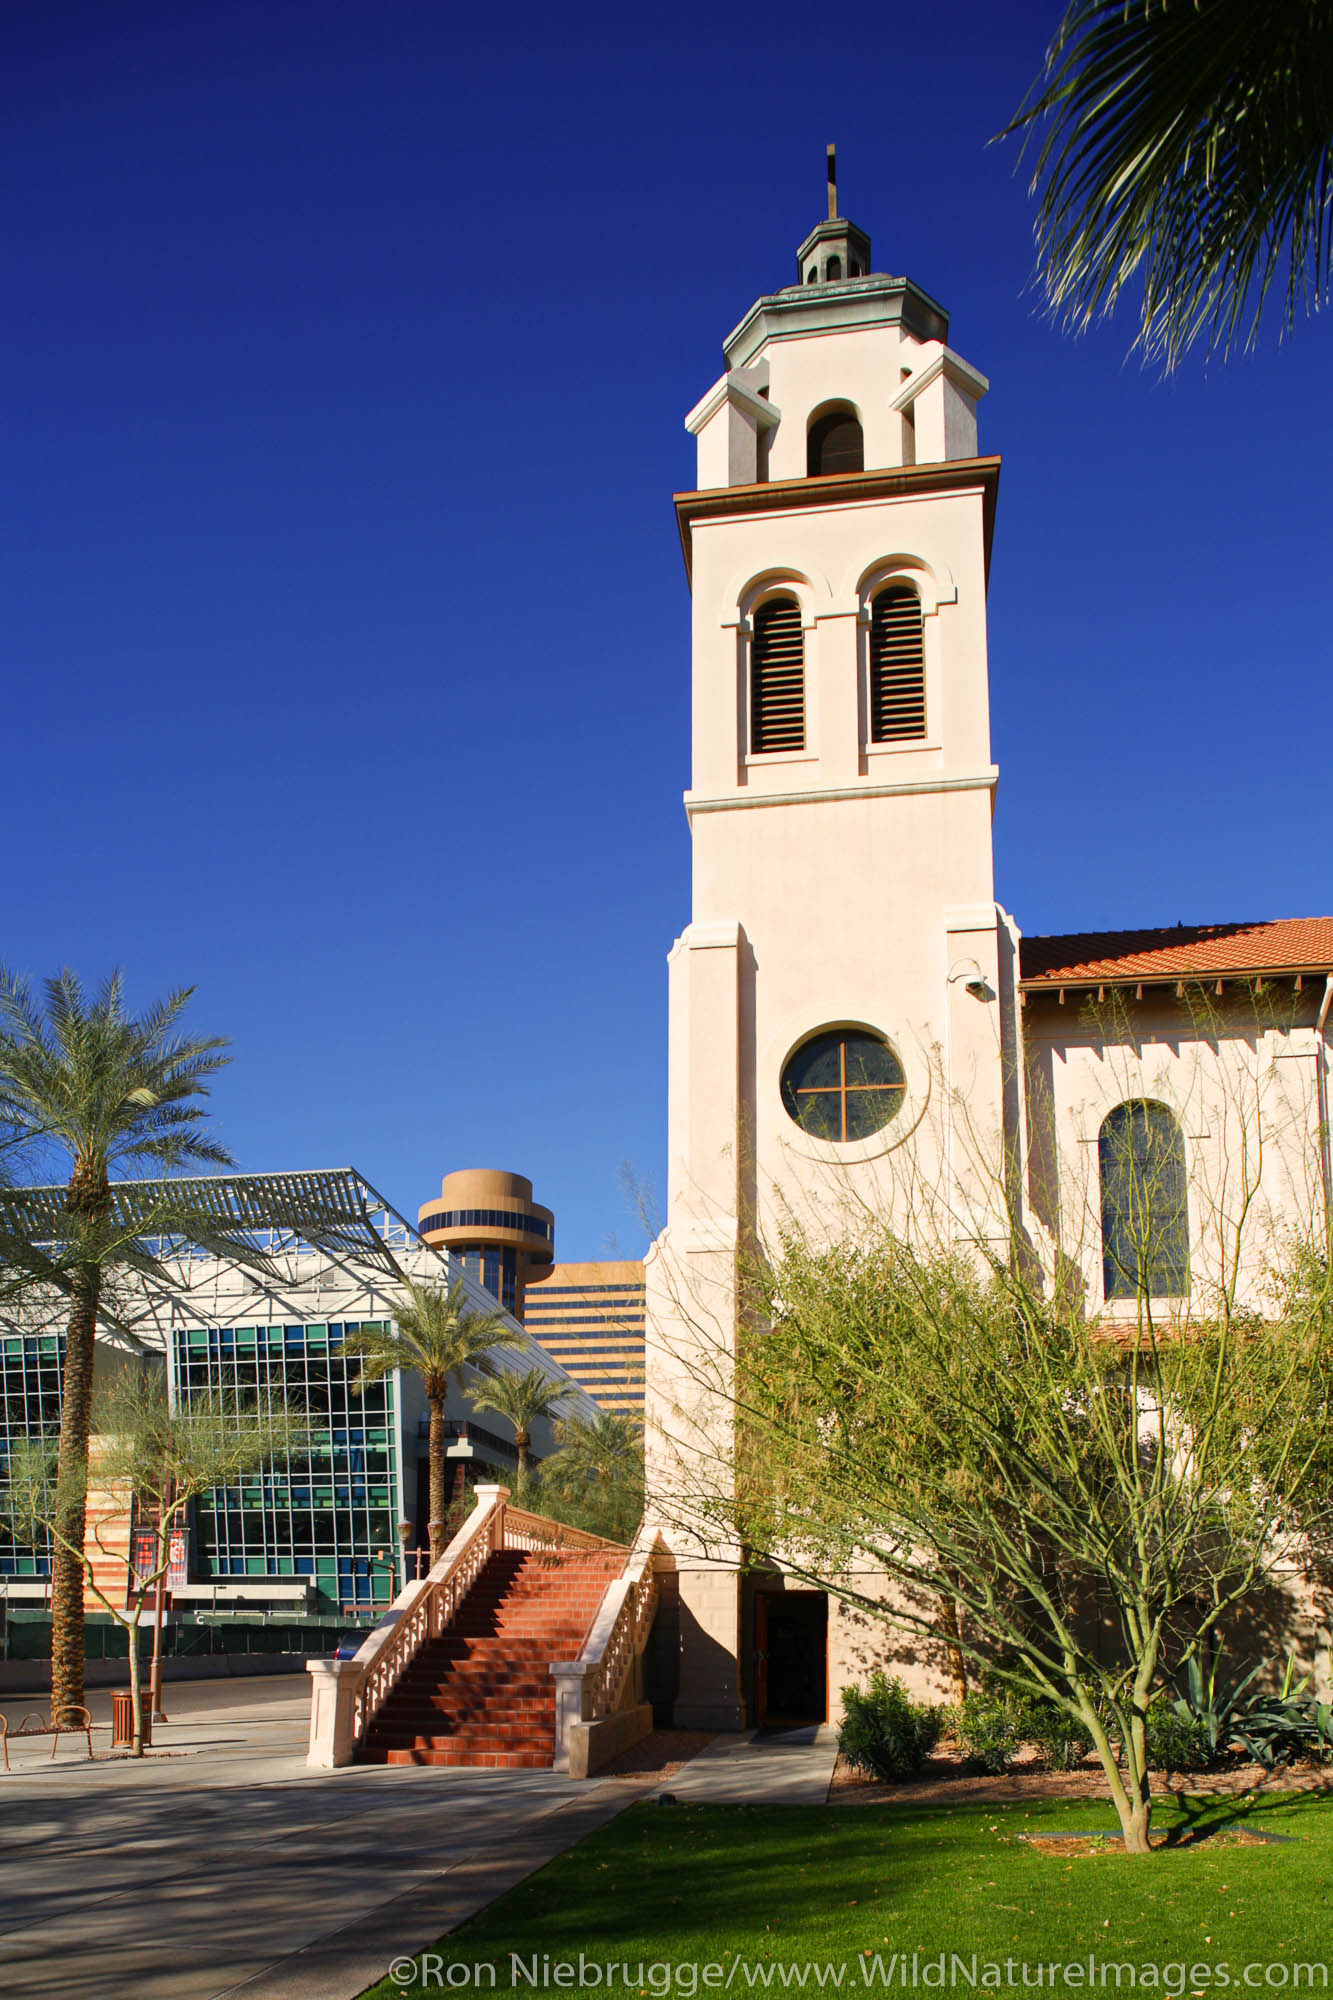 St. Mary's Basilica is the oldest Catholic church in Phoenix founded in 1881, Phoenix, Arizona.